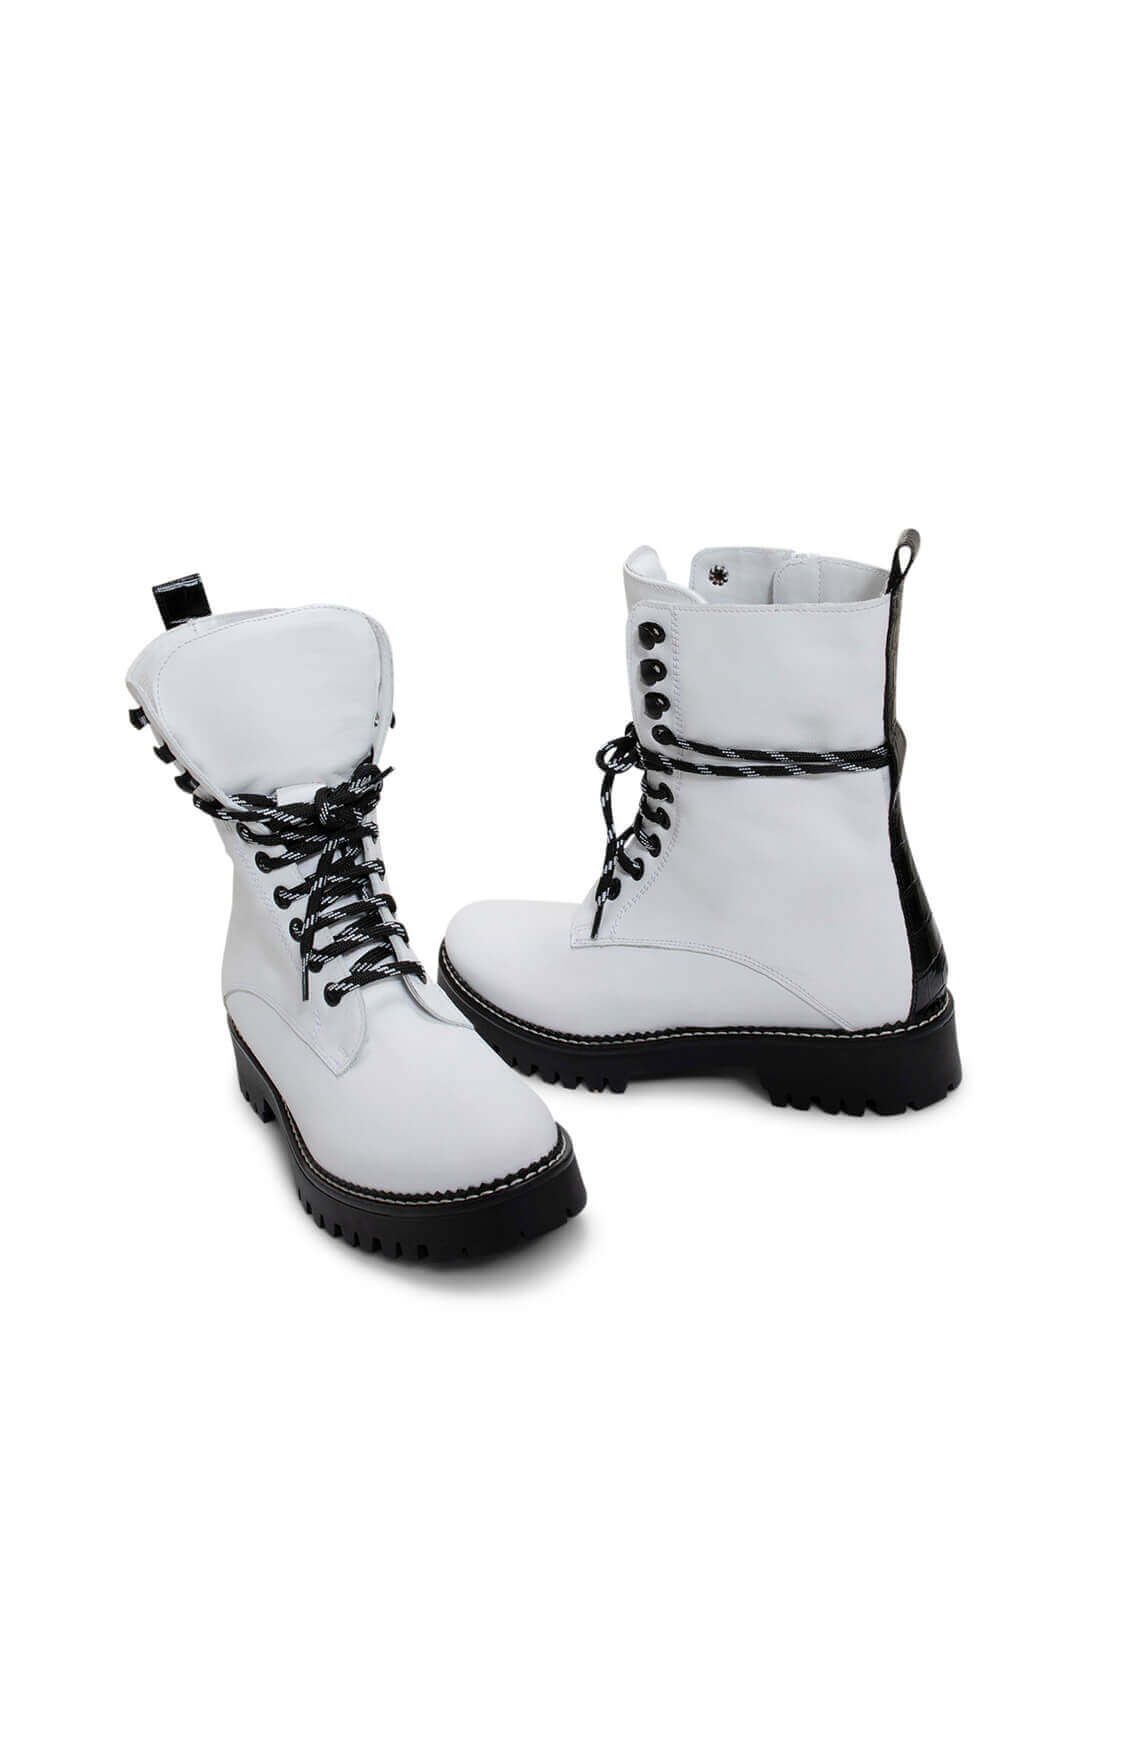 Noi Due Dames Bikerboots wit